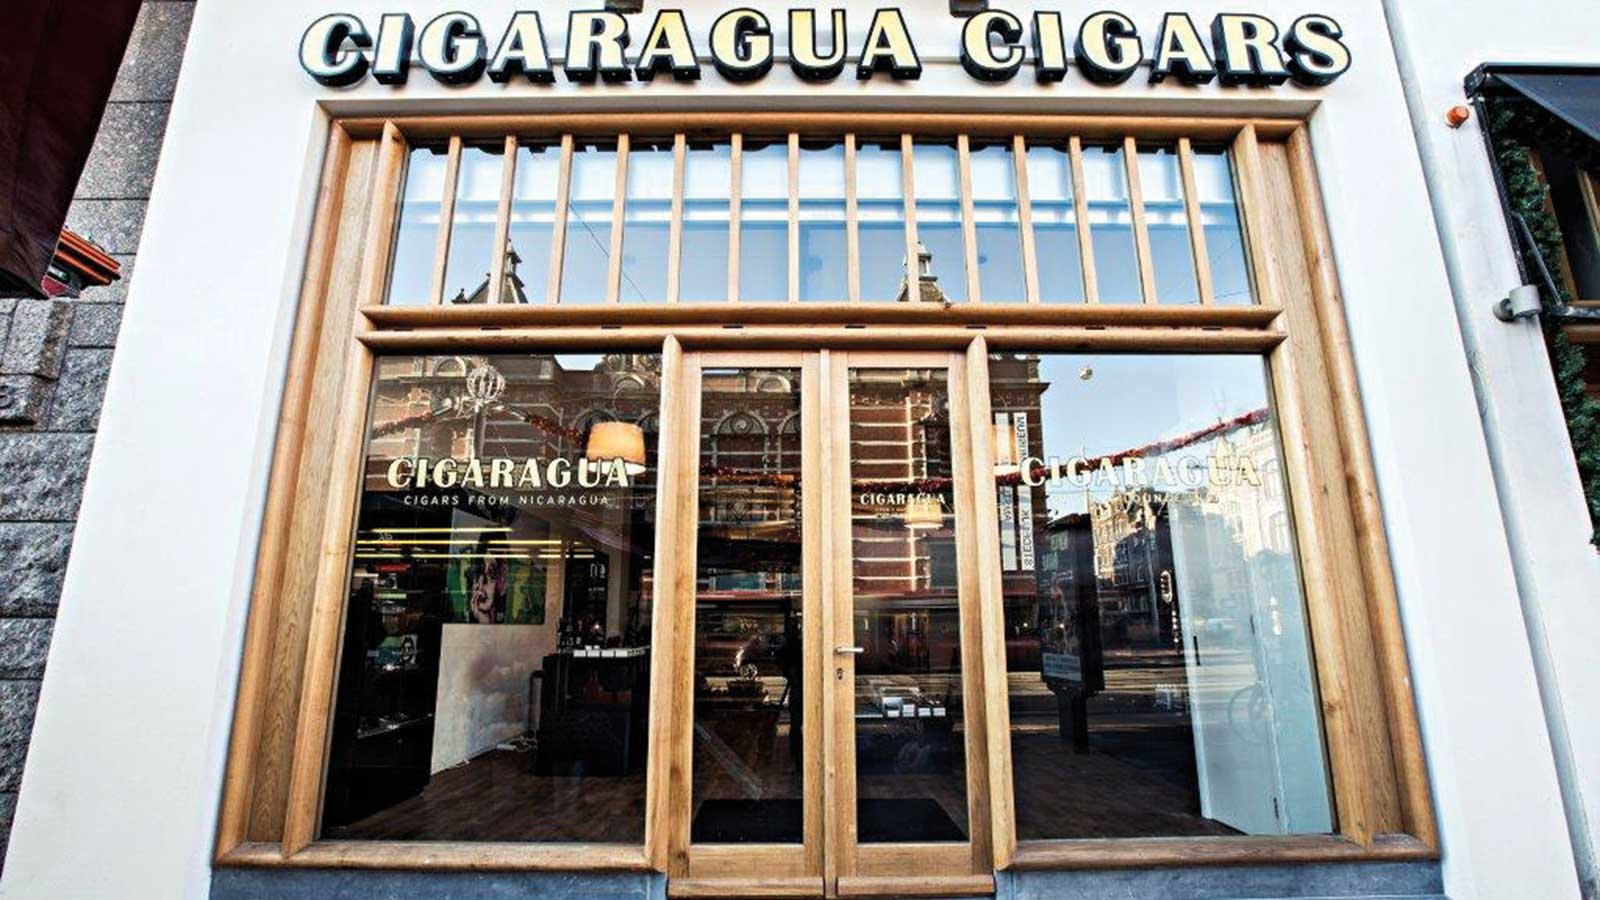 Cigaragua sits in a prime location in the Museum Quarter, across from the grassy square that is home to the city's three biggest cultural attractions: the Rijksmuseum, Stedelijk Museum, and the Van Gogh Museum.